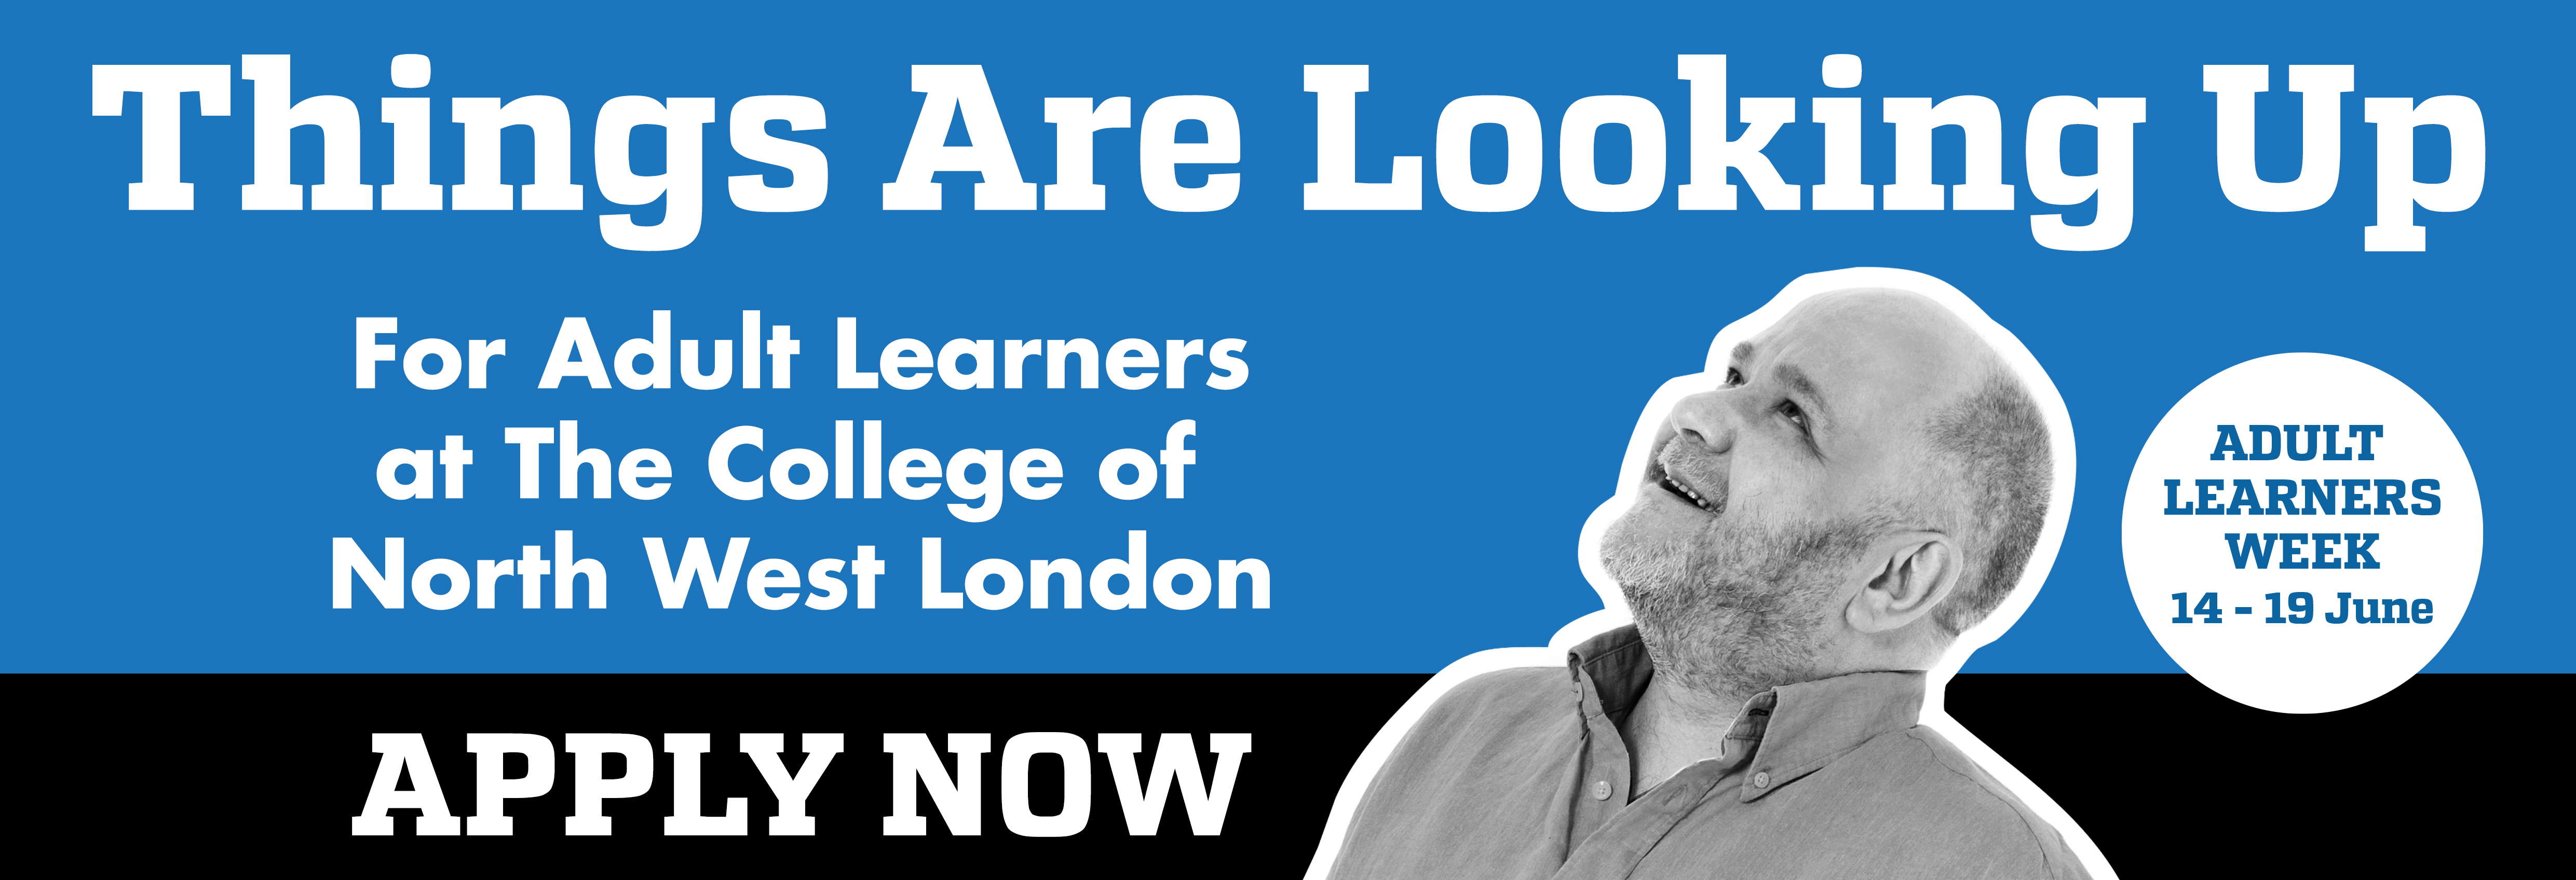 Adult Week Website banner with student looking up telling visitors to Apply Now